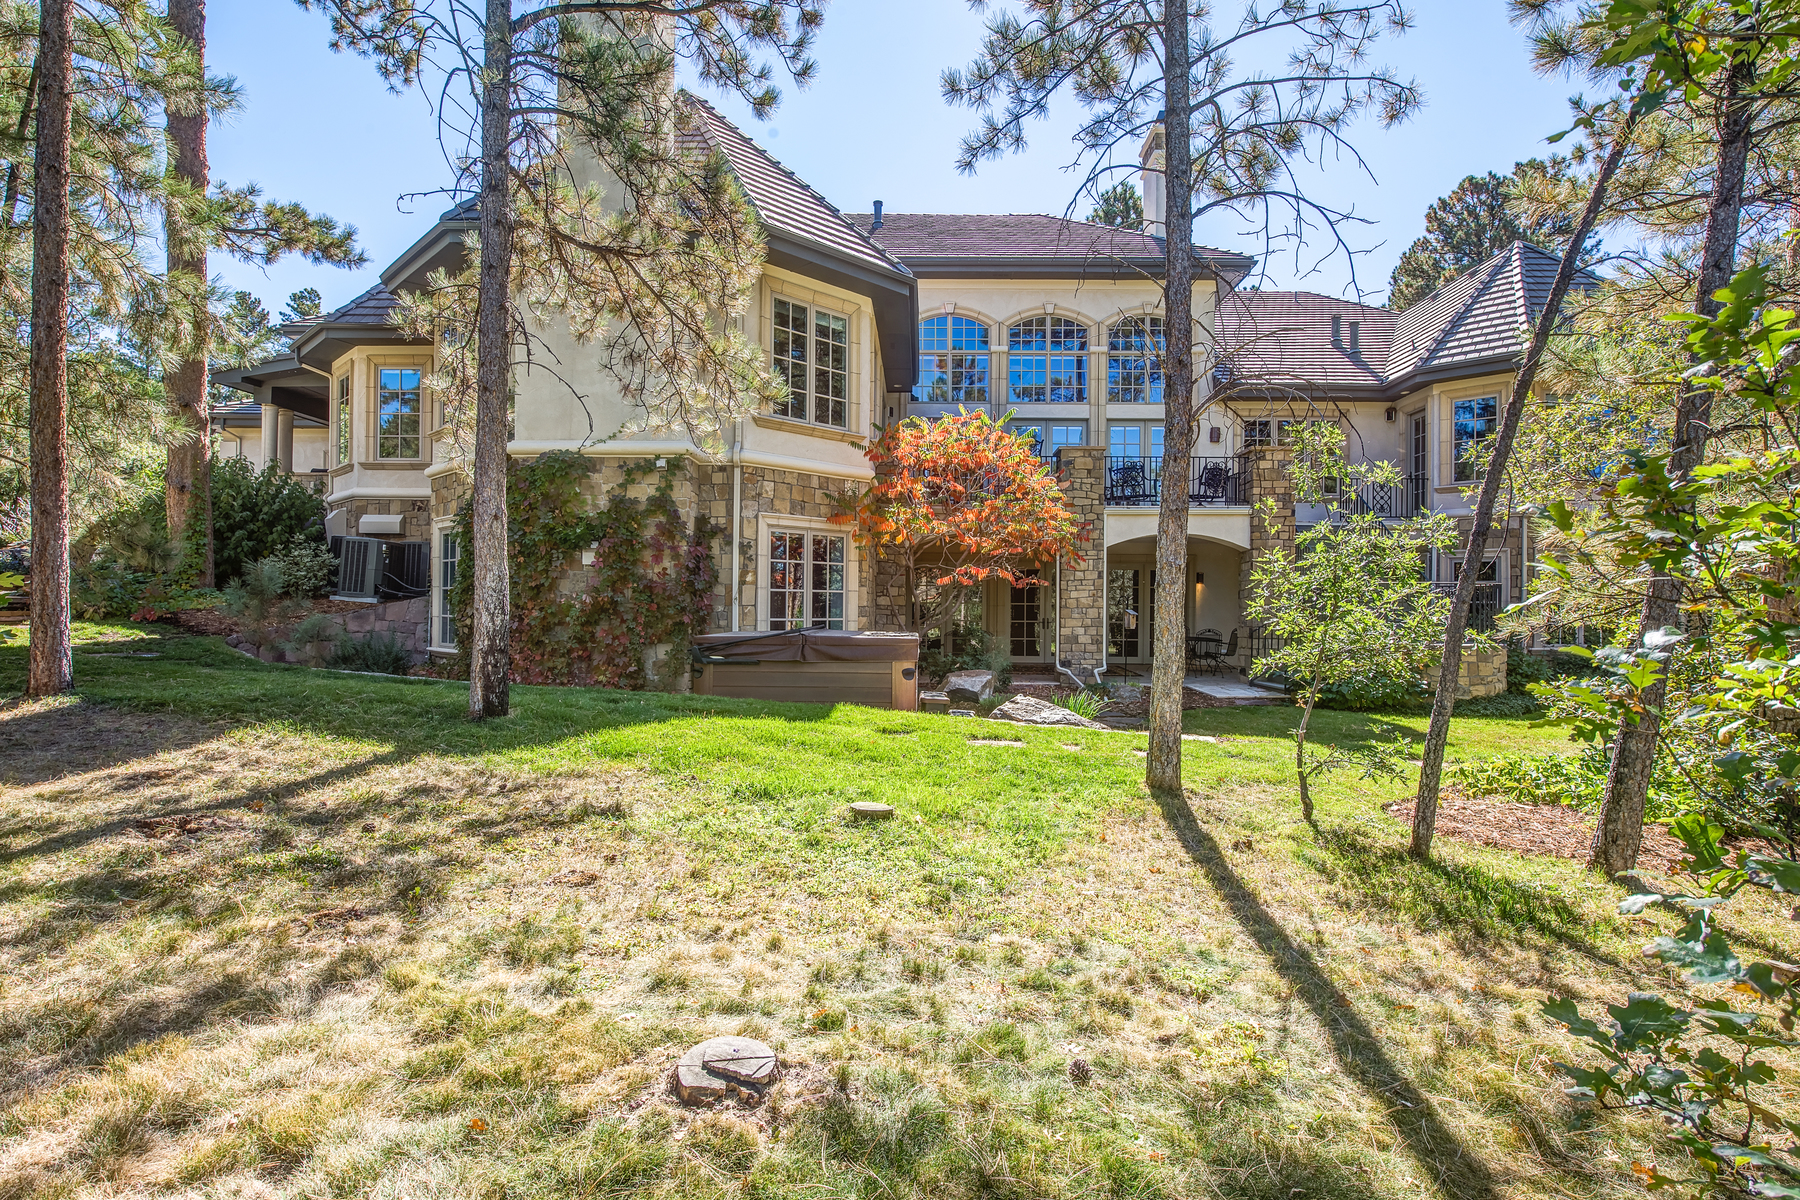 Single Family Home for Sale at Classic Elegance Overlooking 15th hole of Castle Pines Golf Course 323 Paragon Way Castle Rock, Colorado, 80108 United States